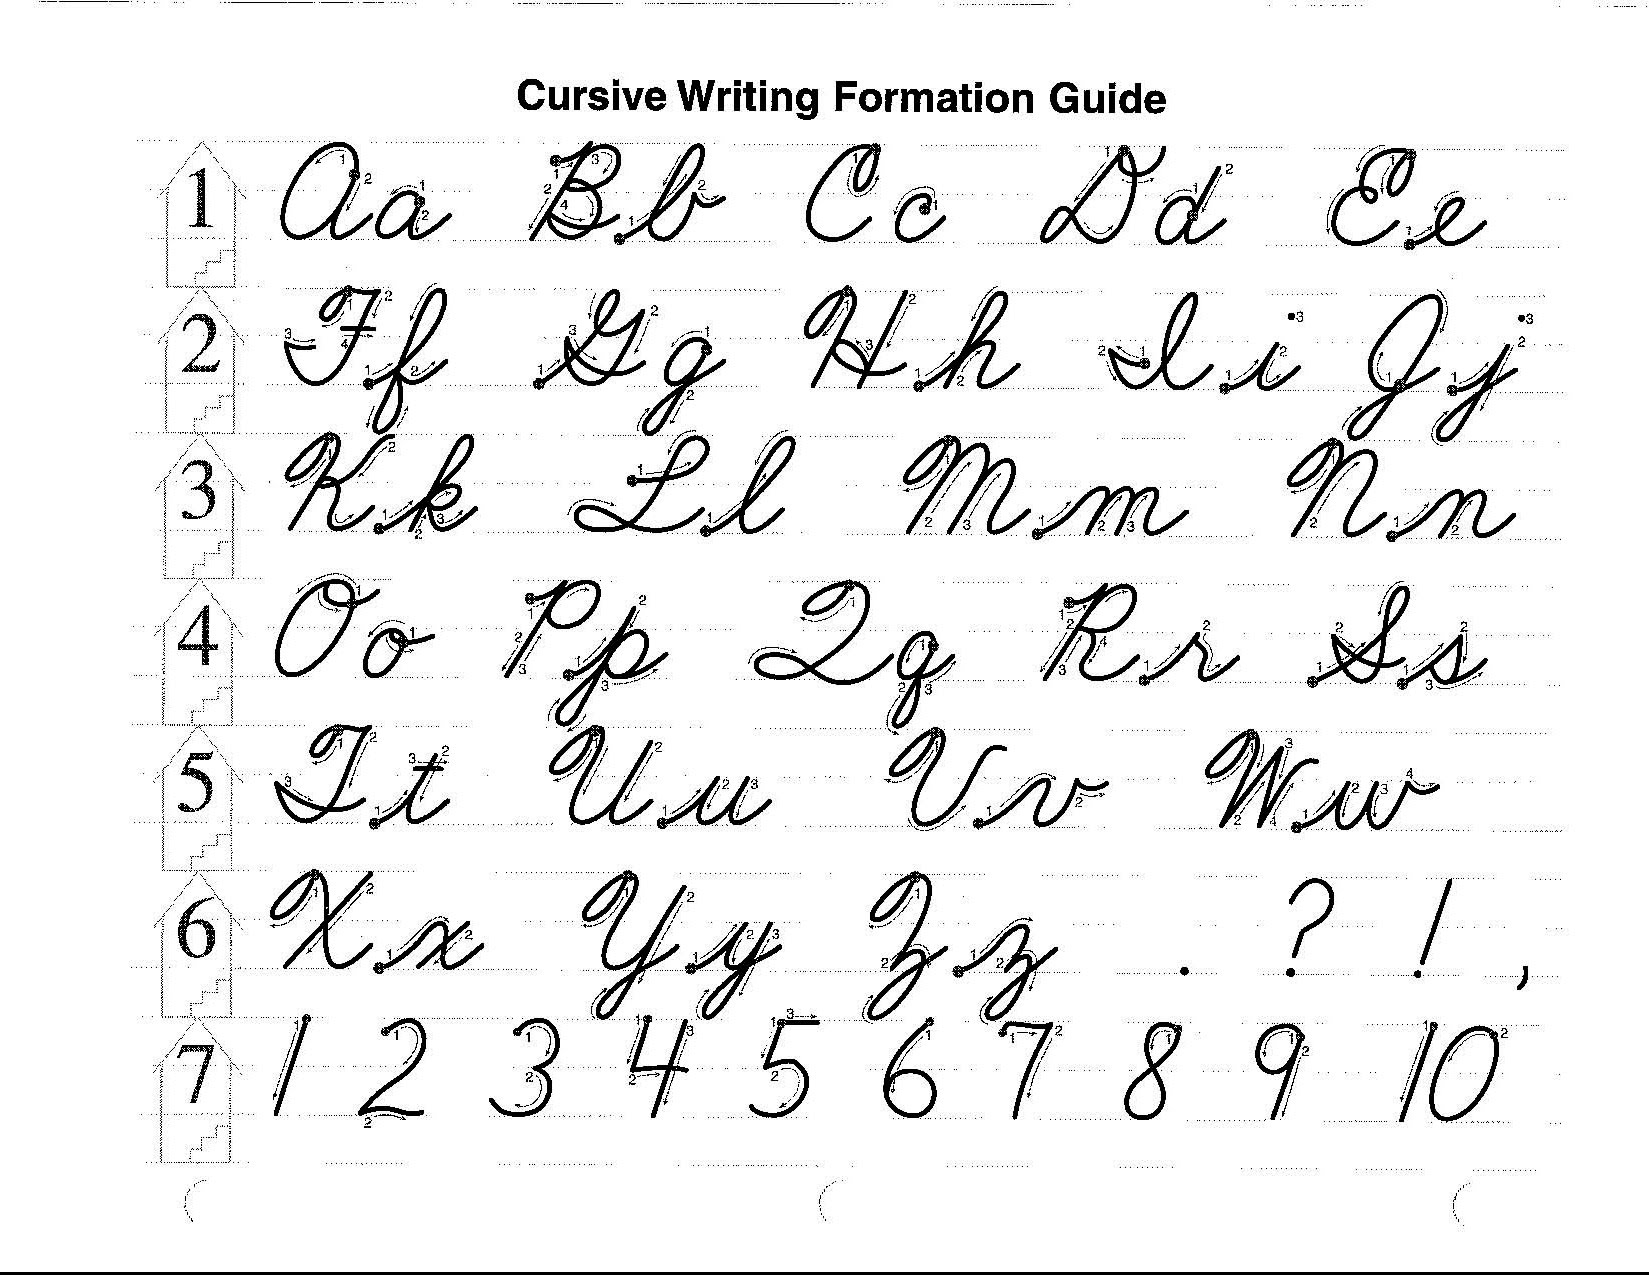 Worksheet Alphabets In Cursive Writing cursive writing alphabet islamichomeeducation alphabet